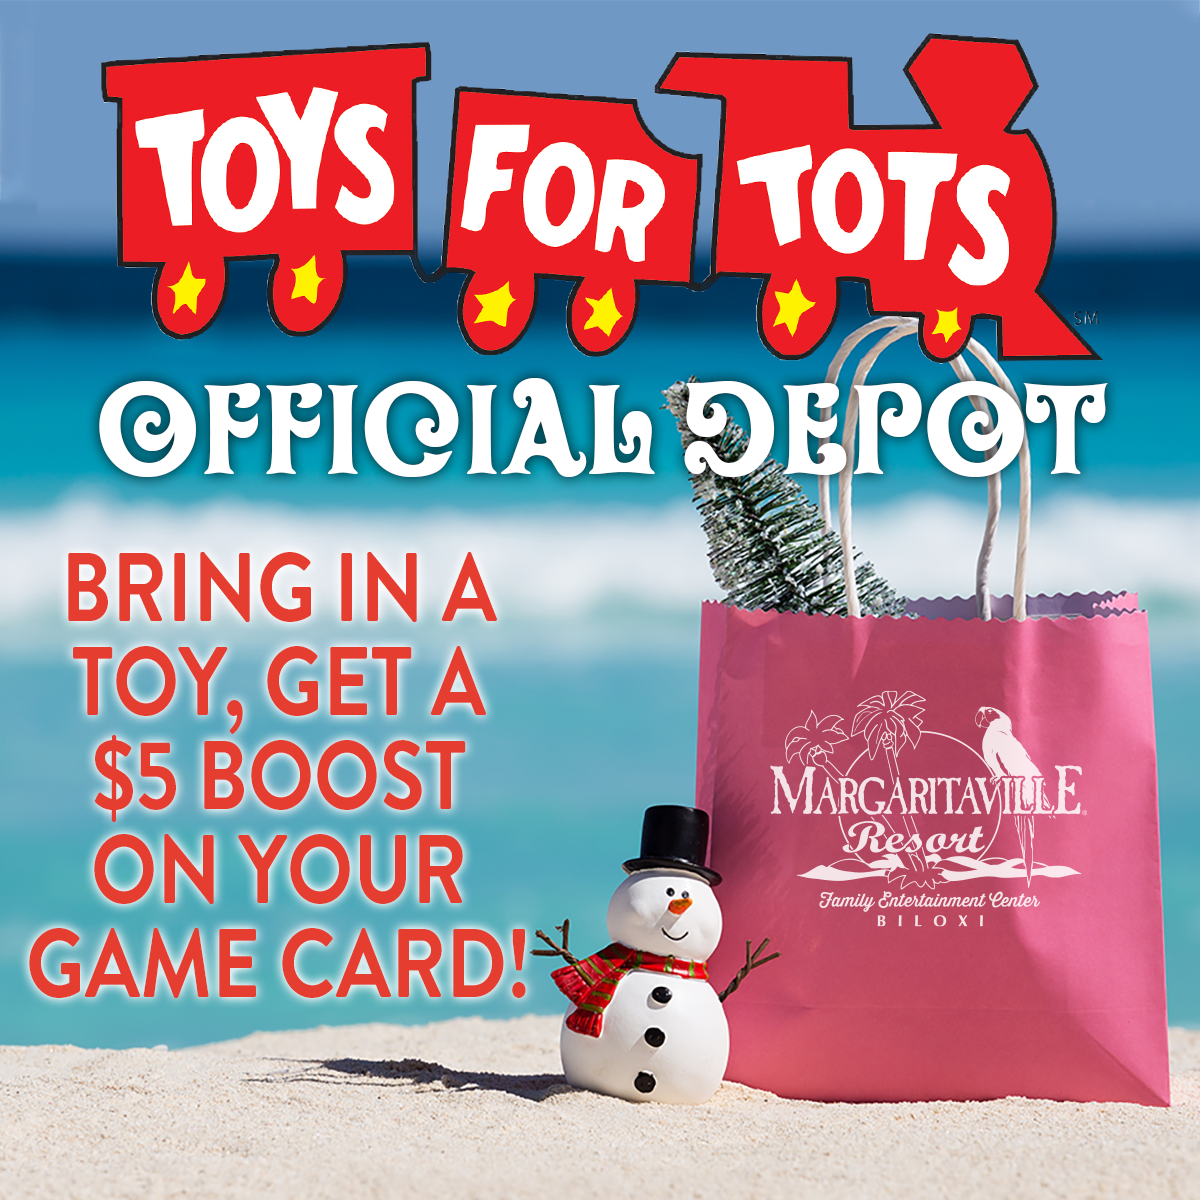 Toys For Tots Drop-off Boost